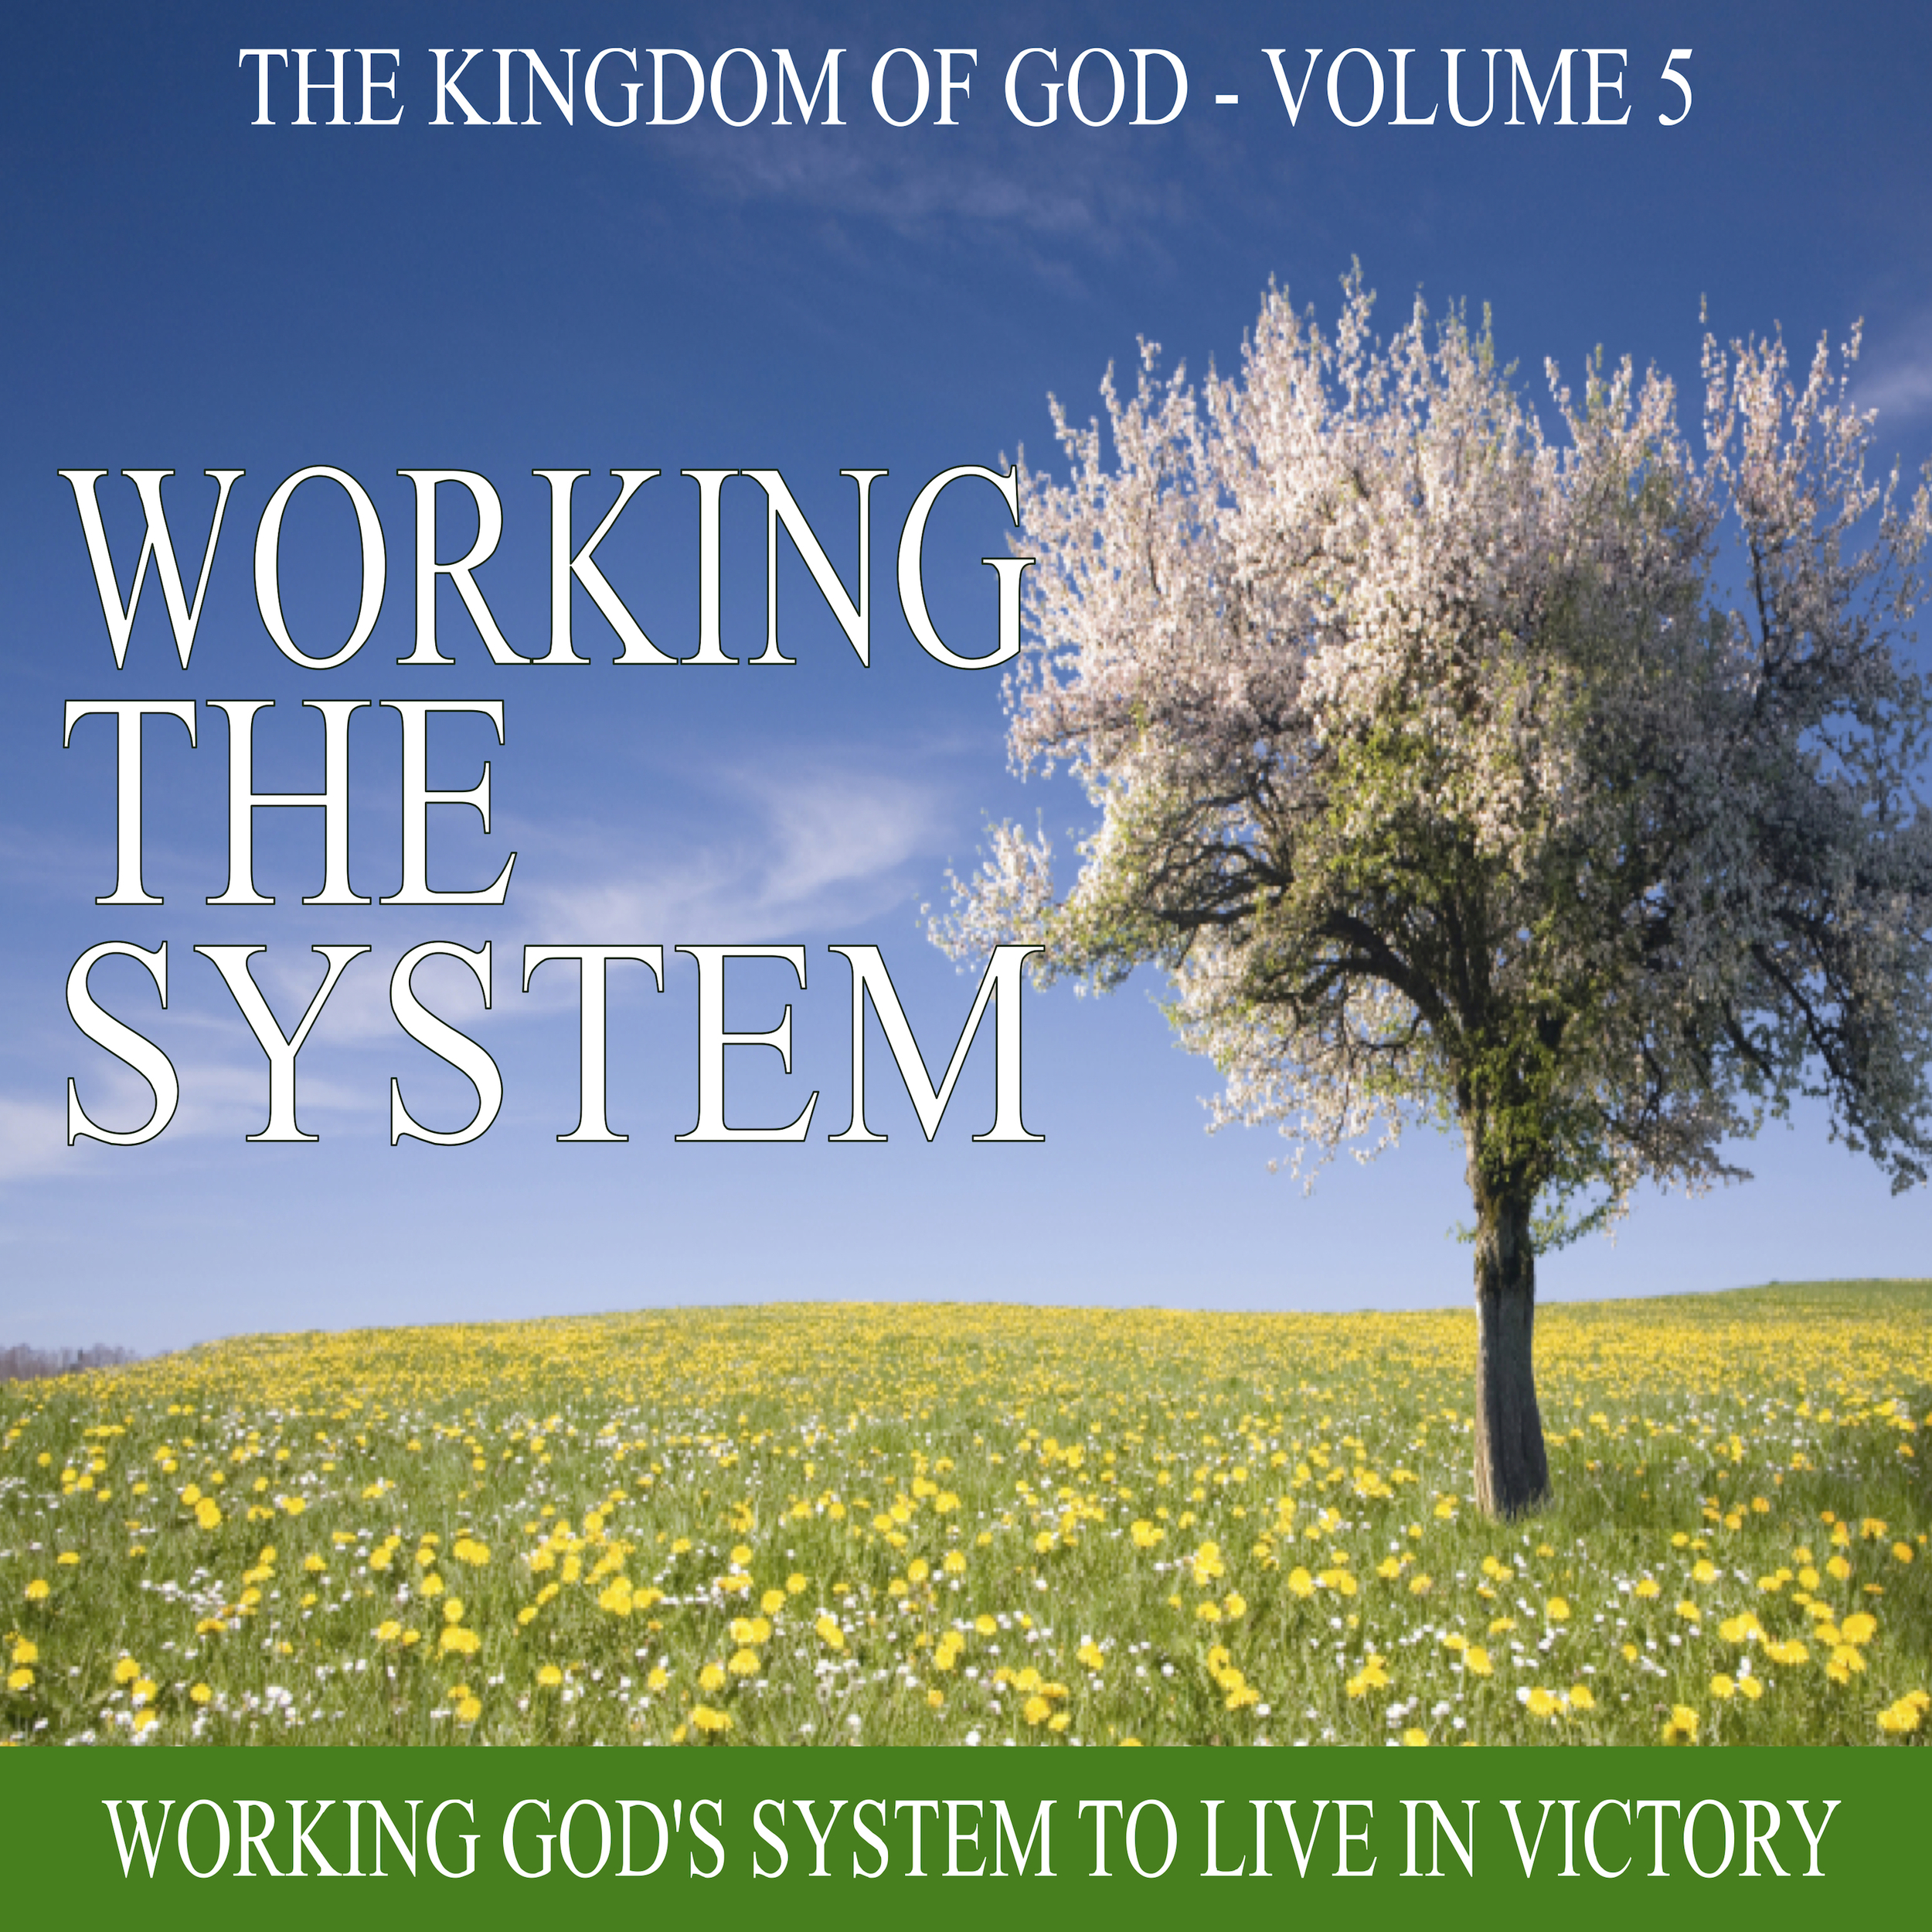 Working The System Cover Pic.jpg